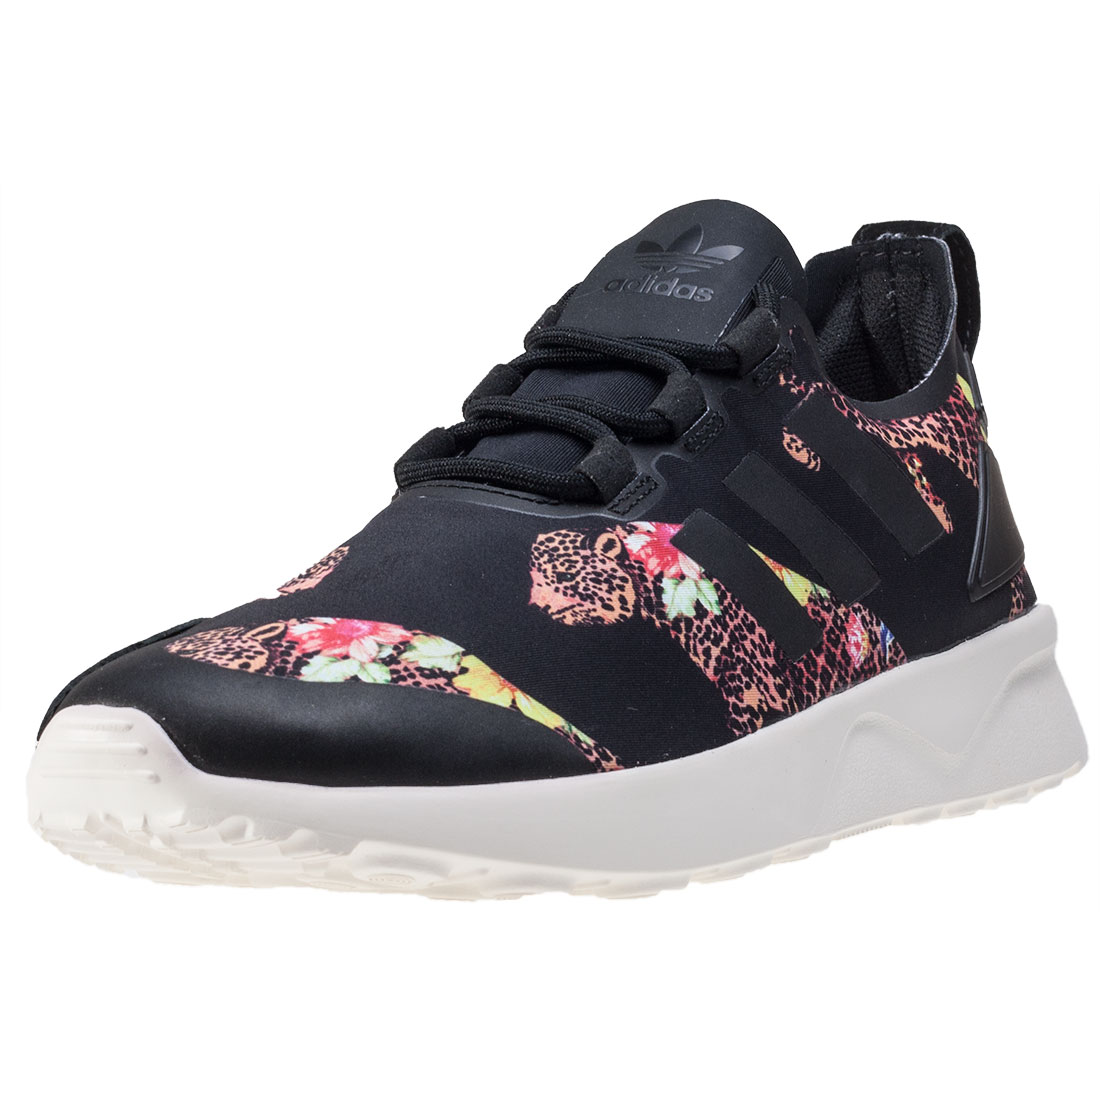 Zx Flux Womens | Zx Flux Floral | Adidas Flux Foot Locker